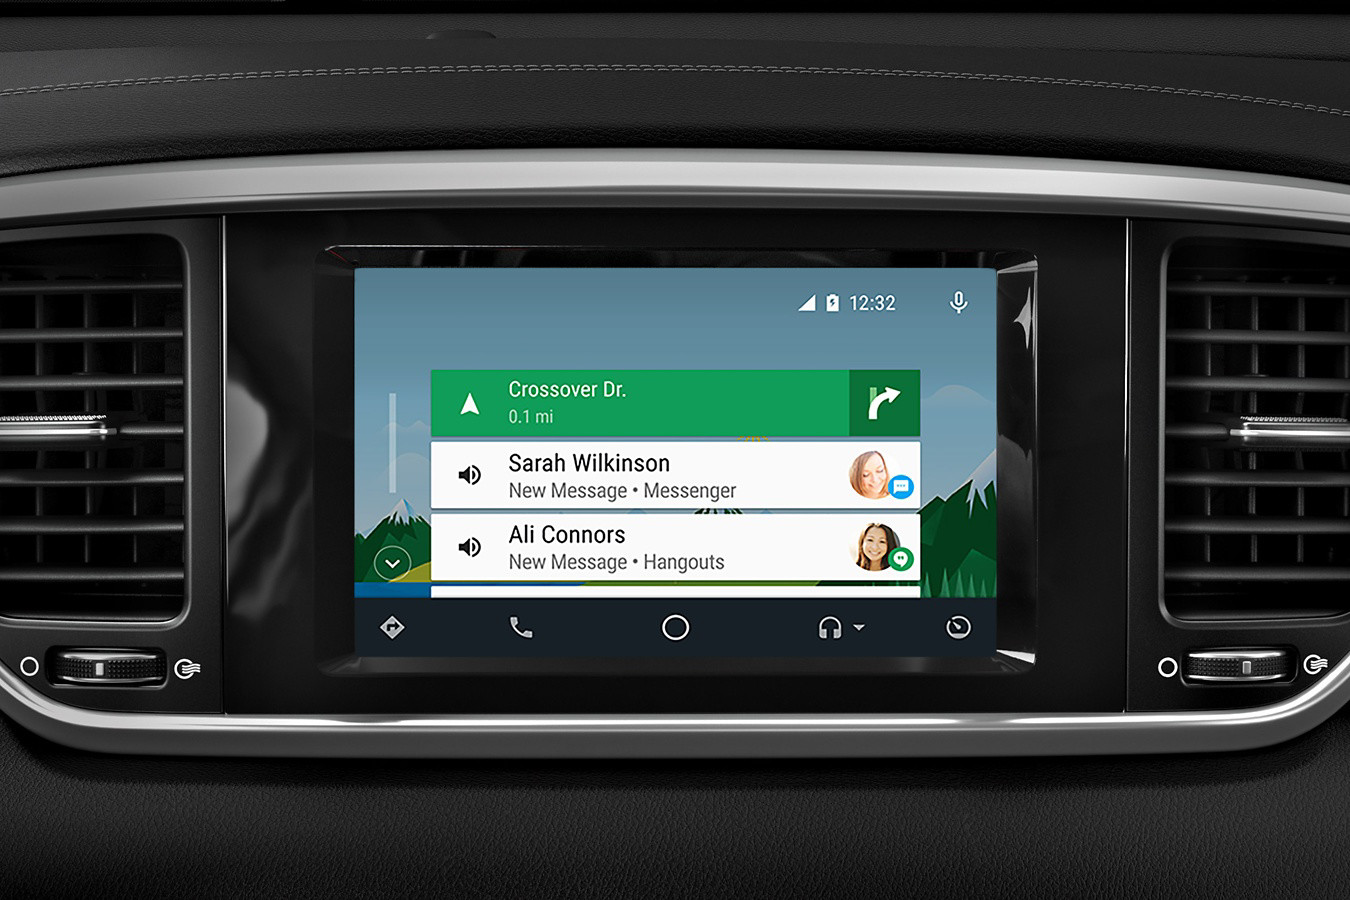 Android Auto™ in the 2020 Kia Sportage